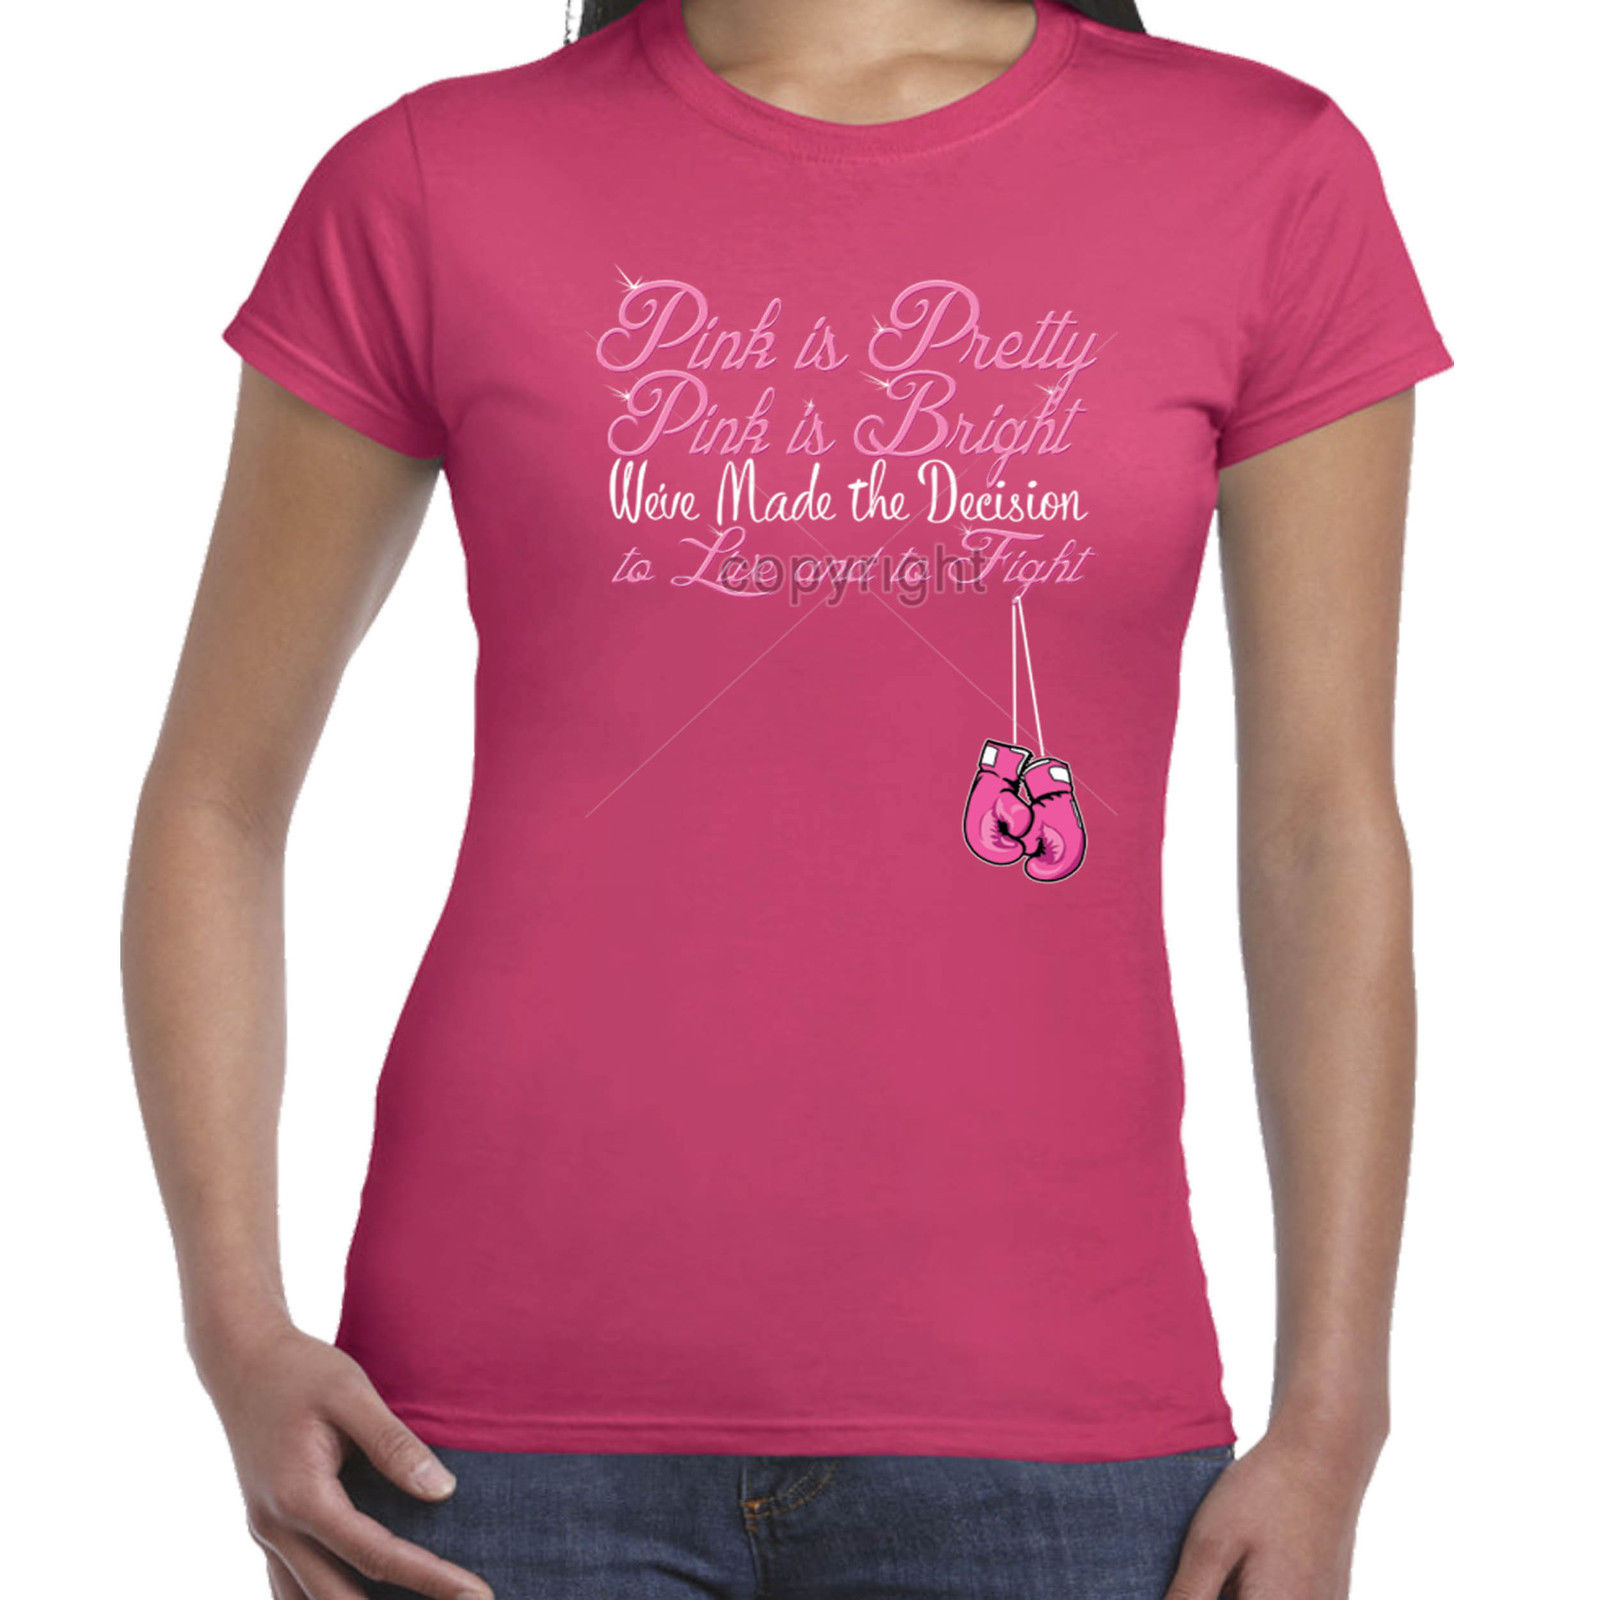 76c77f21c02 Ladies T shirt Womens Breast Cancer Awareness I wear Pink Ribbon Charity